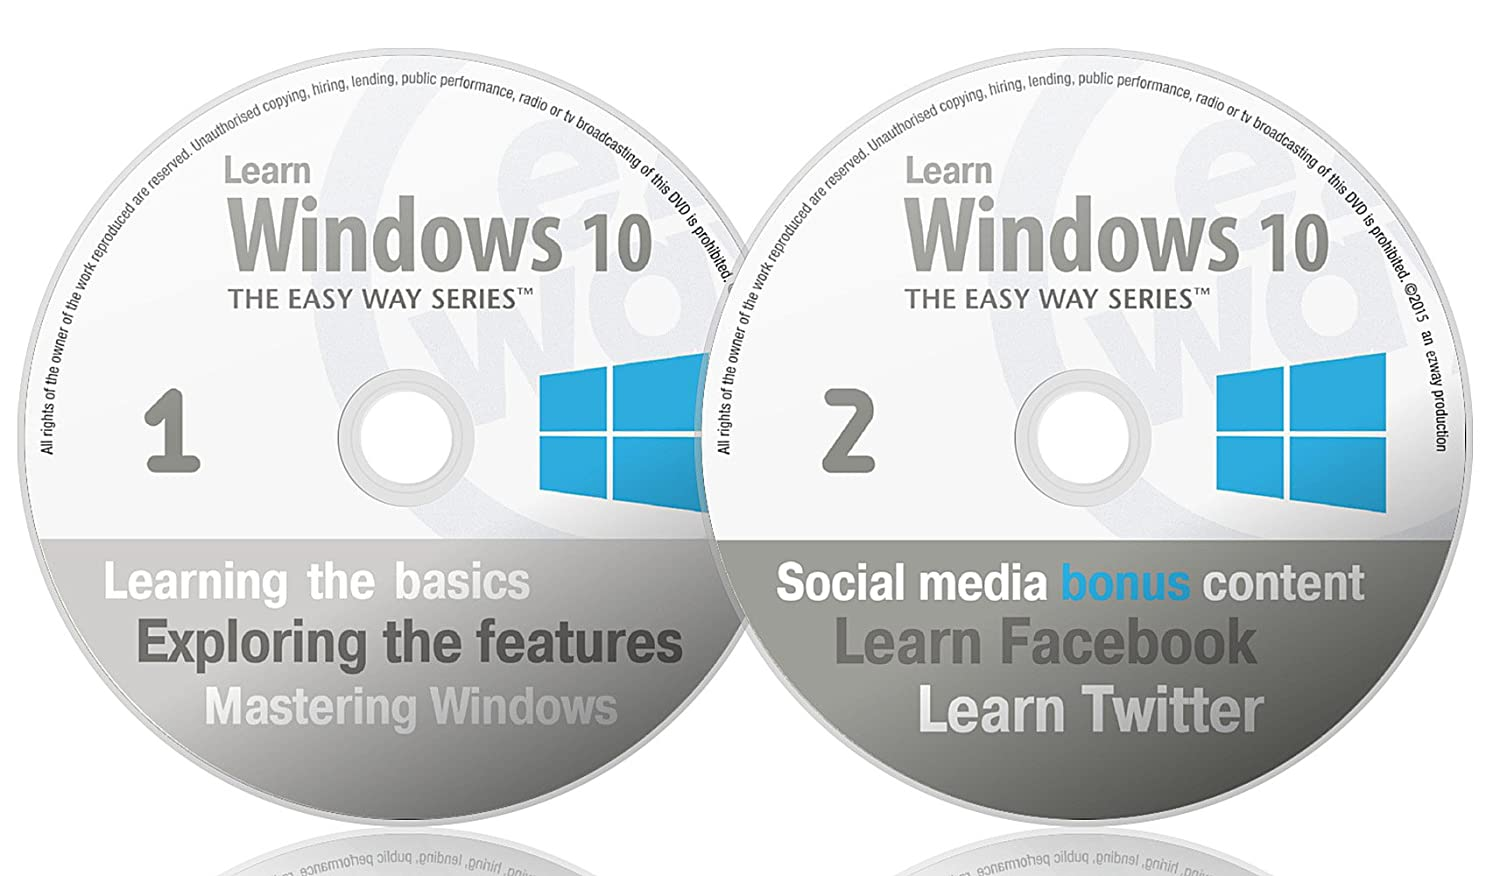 Show me how to play a dvd in windows 10 - Learn Windows 10 The Easy Way With Bonus Content On Learning Facebook And Twitter Pc Dvd Amazon Co Uk Software